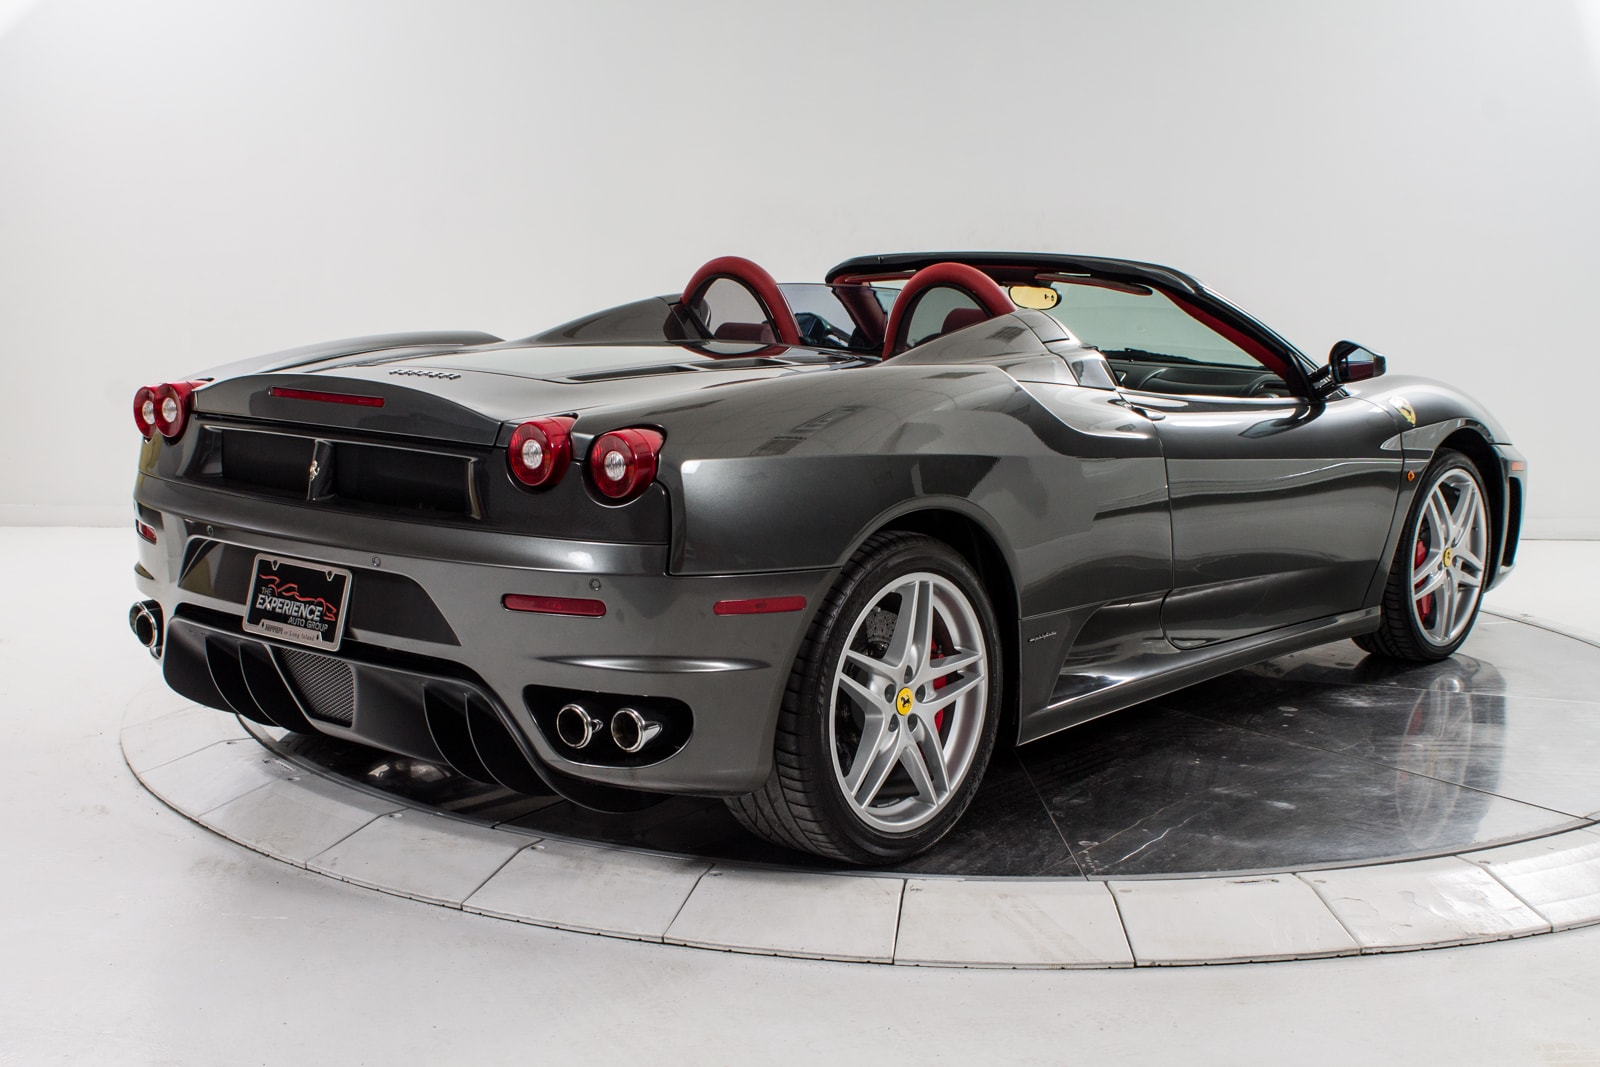 used 2008 ferrari f430 spider f1 for sale plainview near long island ny vin zffew59a680163147. Black Bedroom Furniture Sets. Home Design Ideas